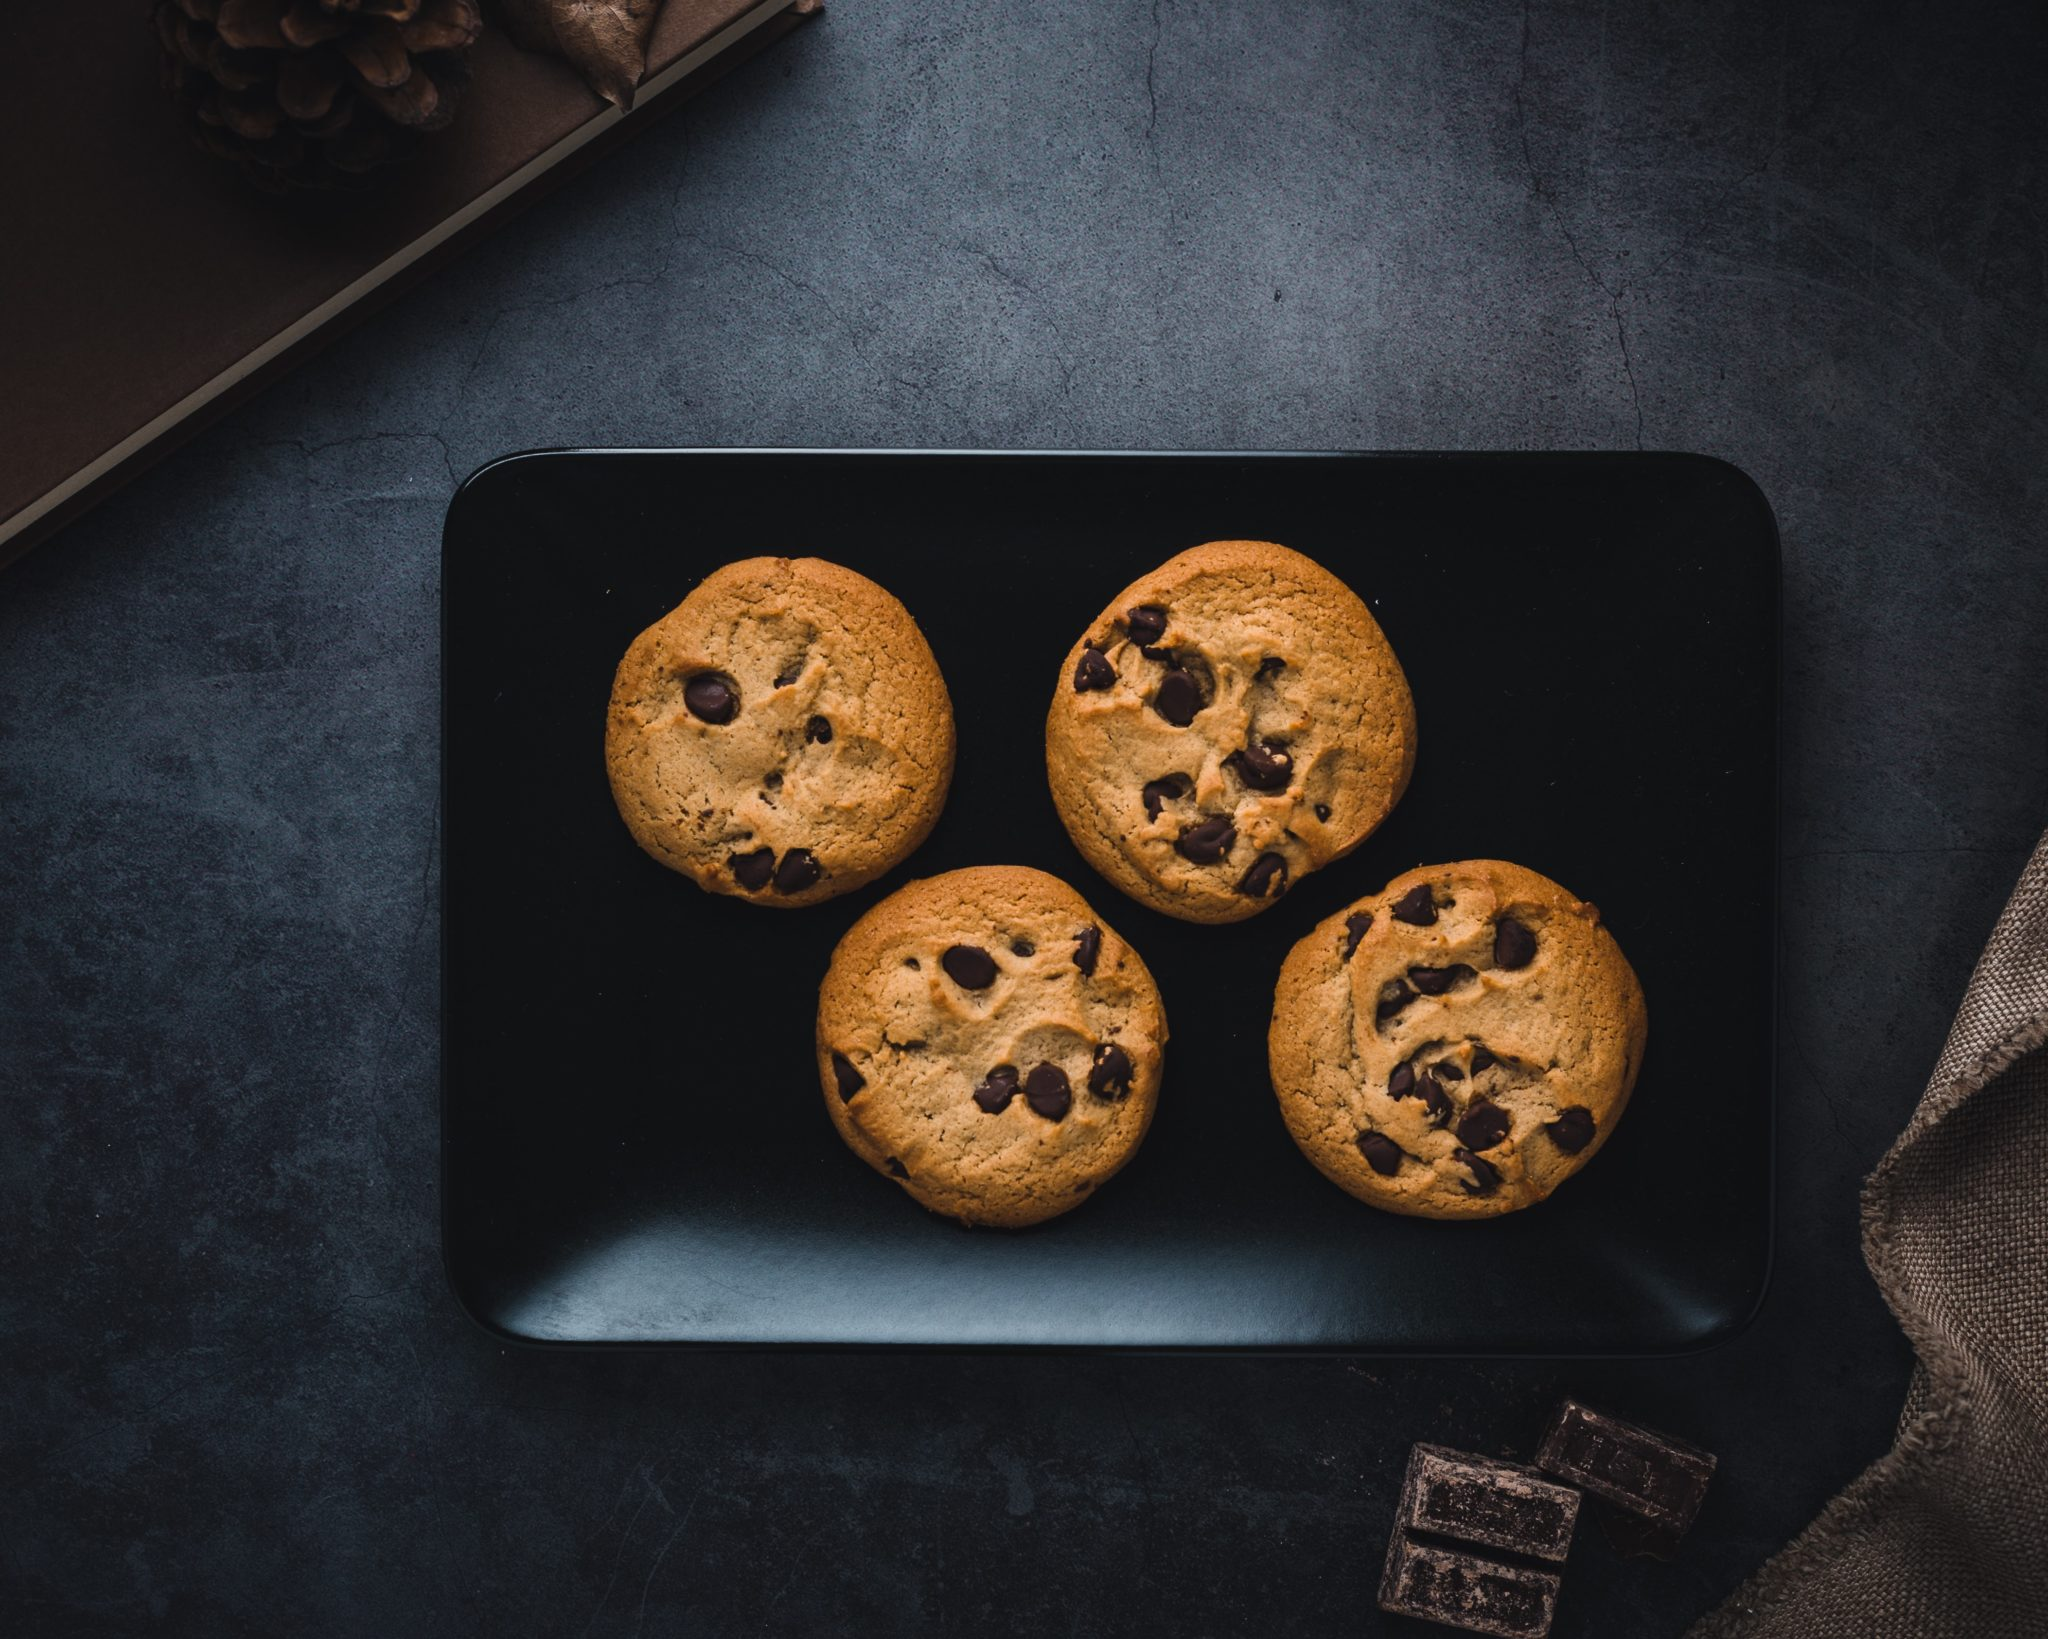 Implications of Eliminating Third-Party Cookies